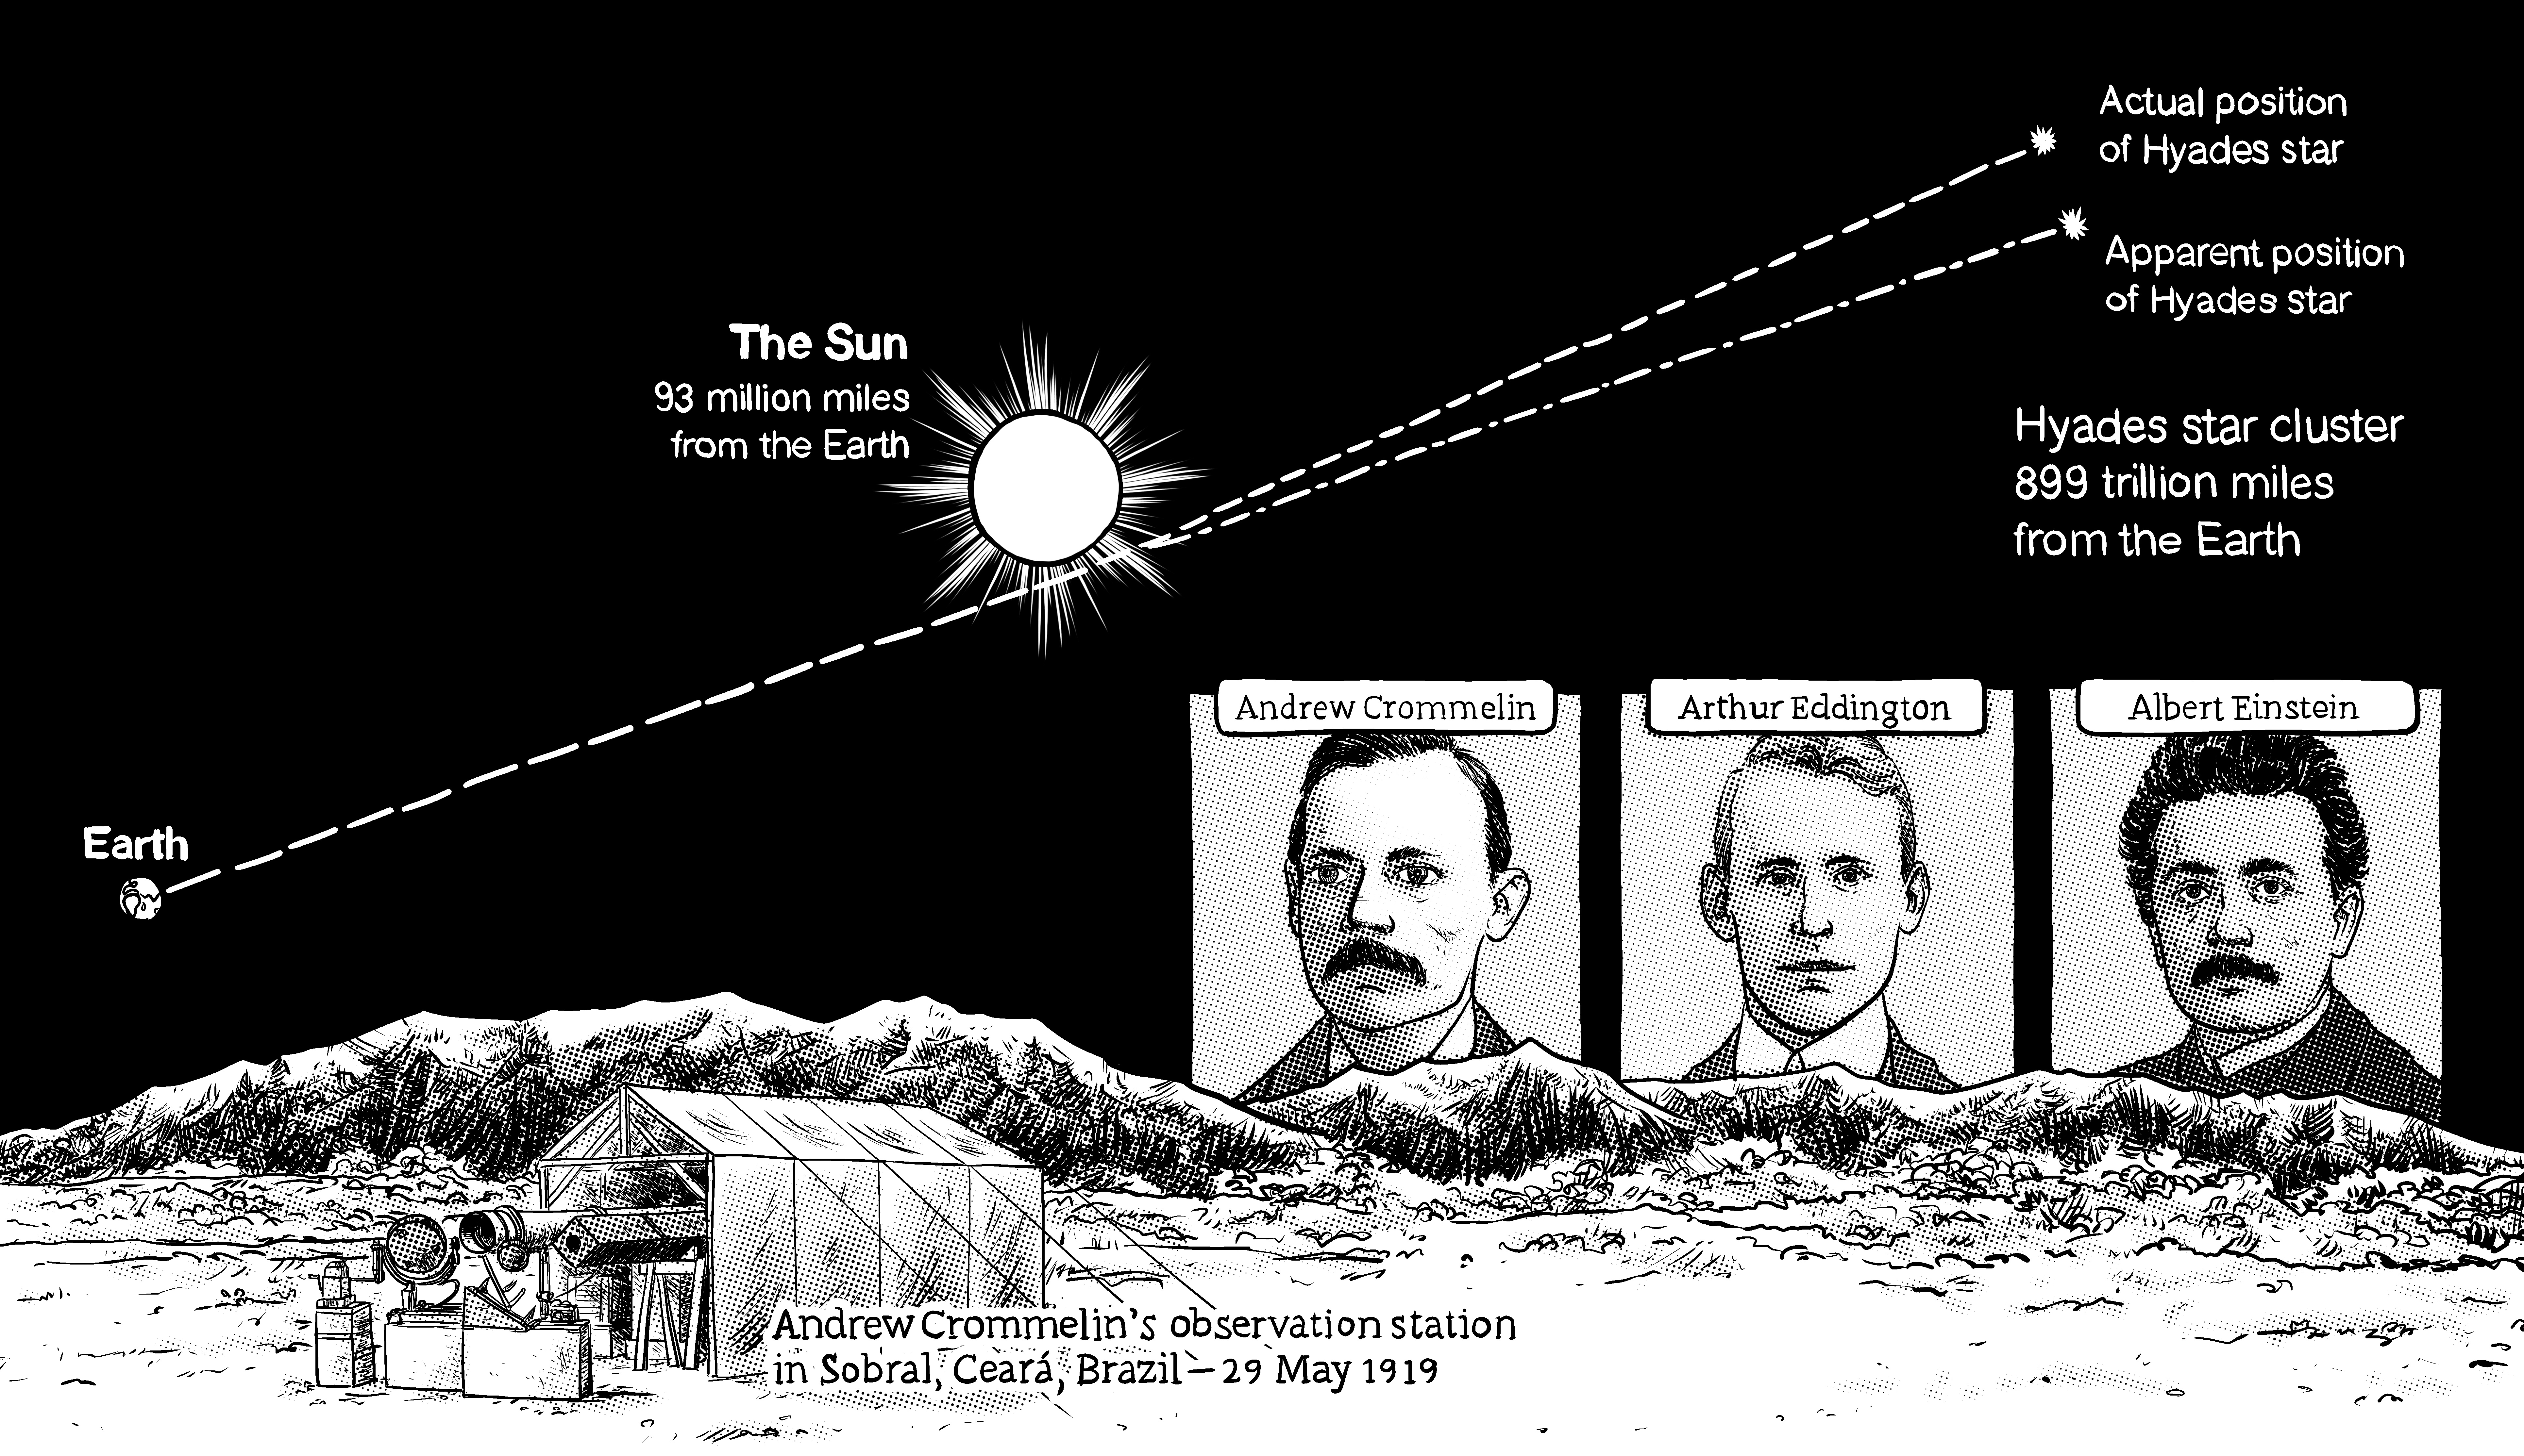 Light bending around the sun, predicted by Einstein, and confirmed in a natural experiment involving an eclipse. Artwork by Seth Hahne (c) 2020.